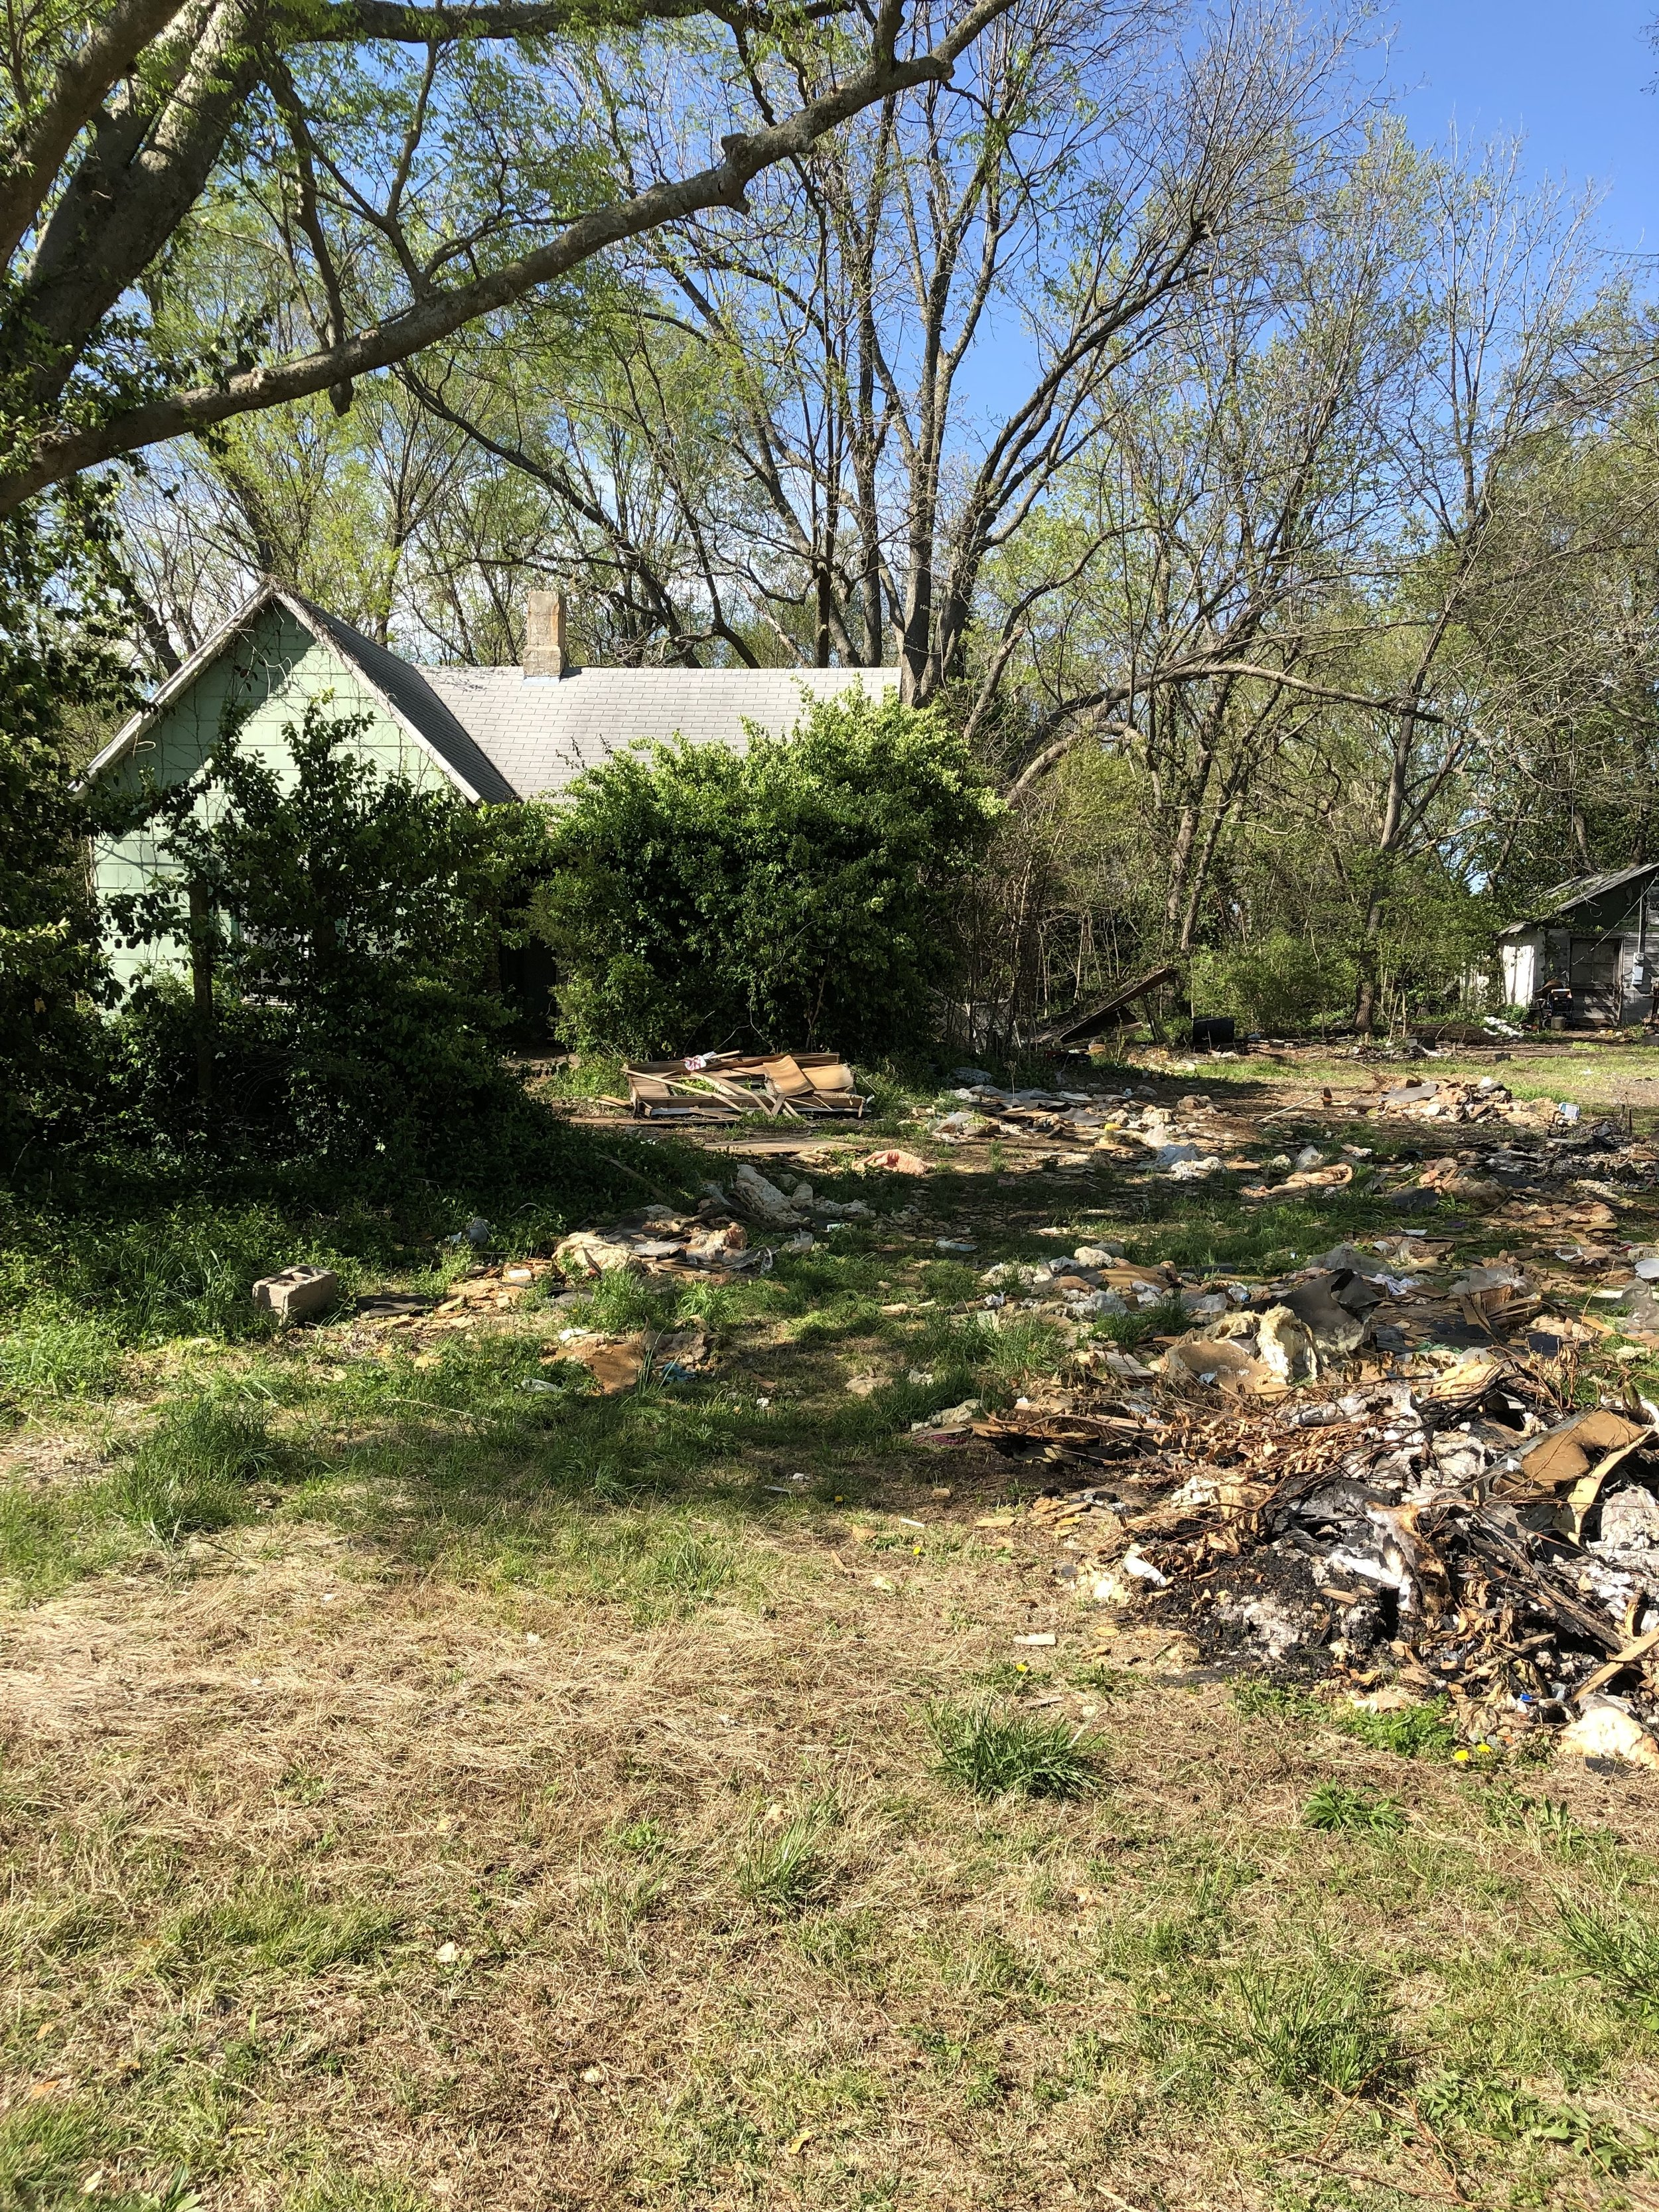 Property Clean Up 4-15-2019 | Rocky Hedge Farm